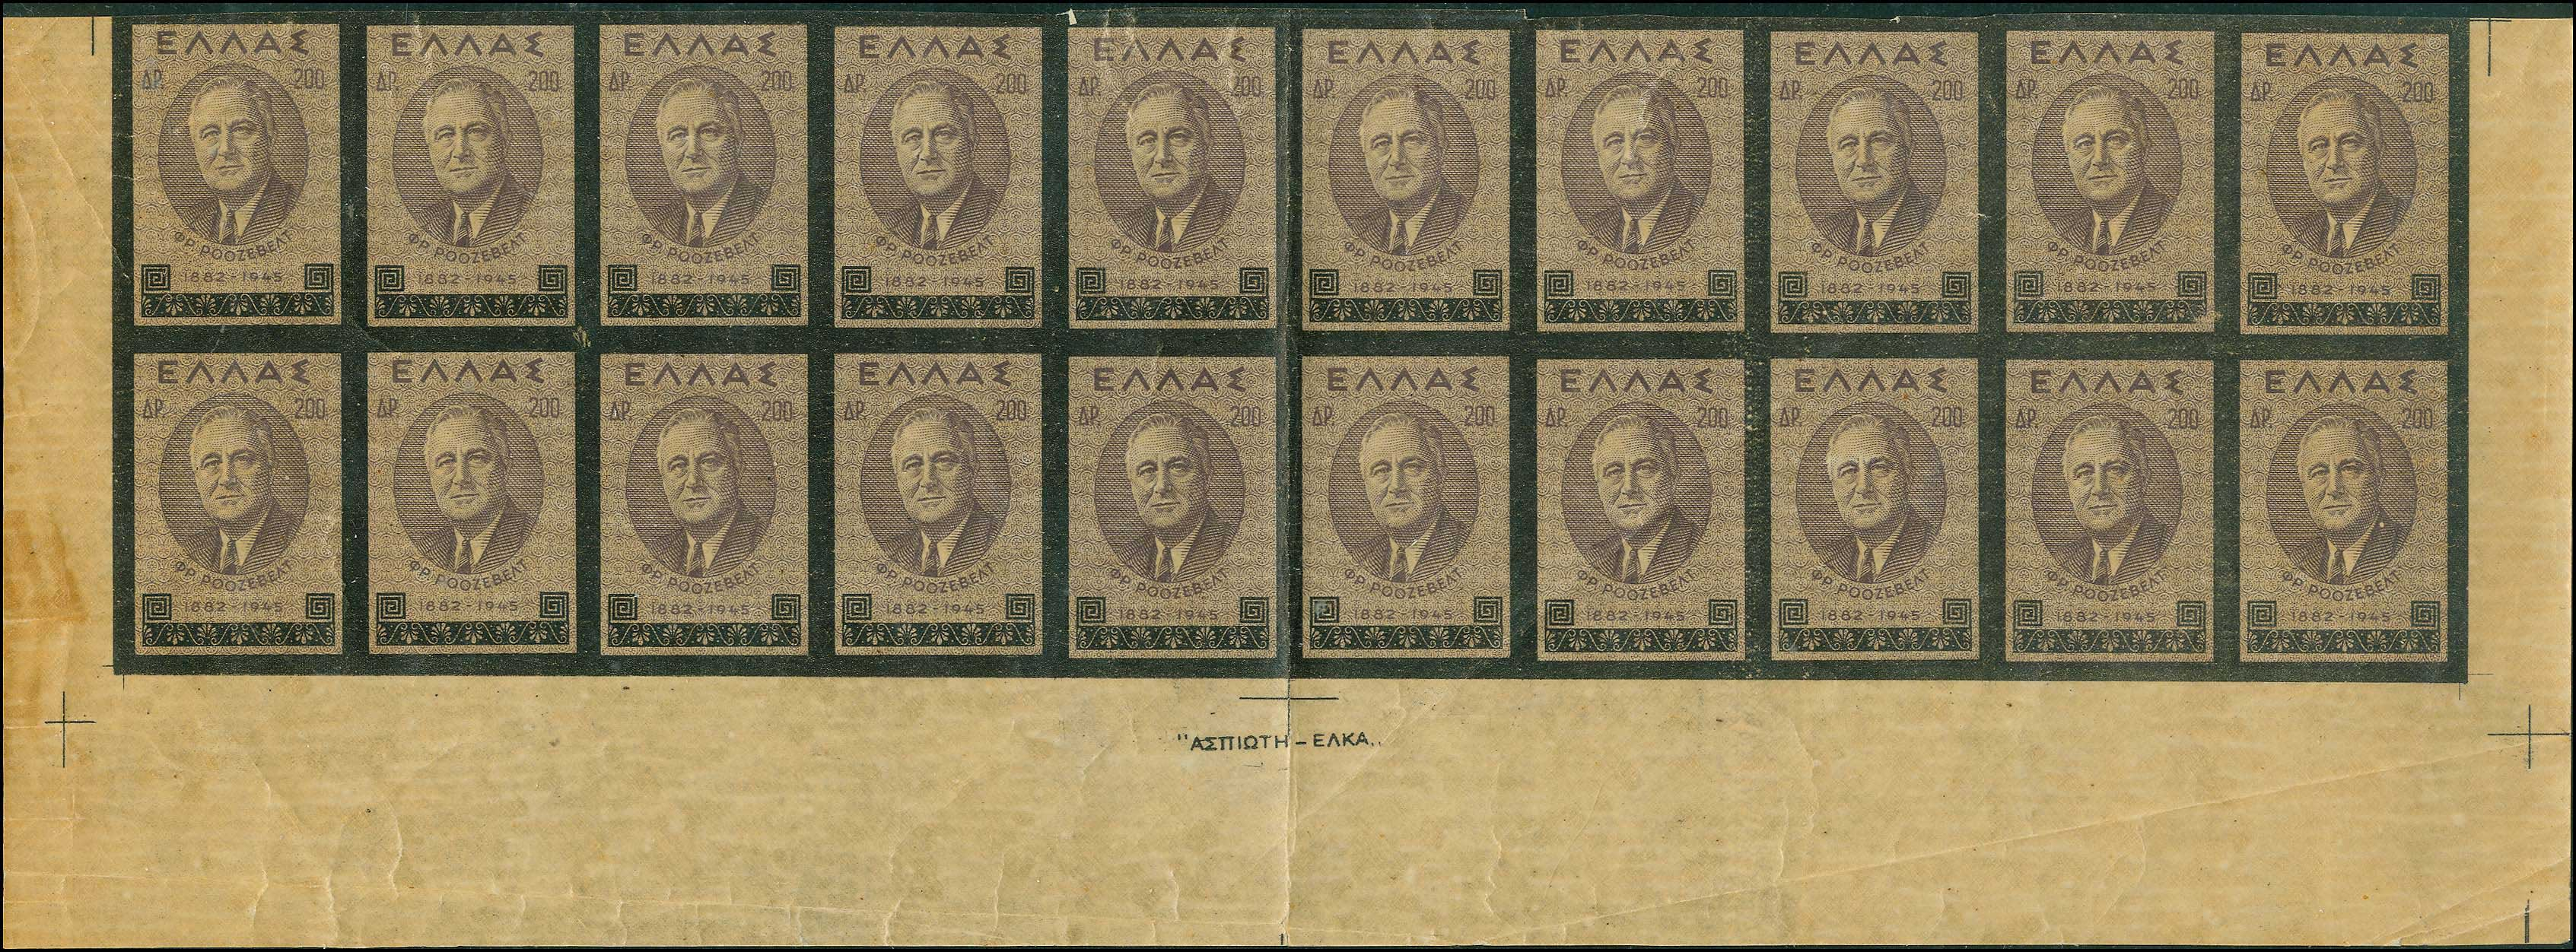 Lot 511 - - 1945-2016 1945-2016 -  A. Karamitsos Public Auction 668 General Philatelic Auction